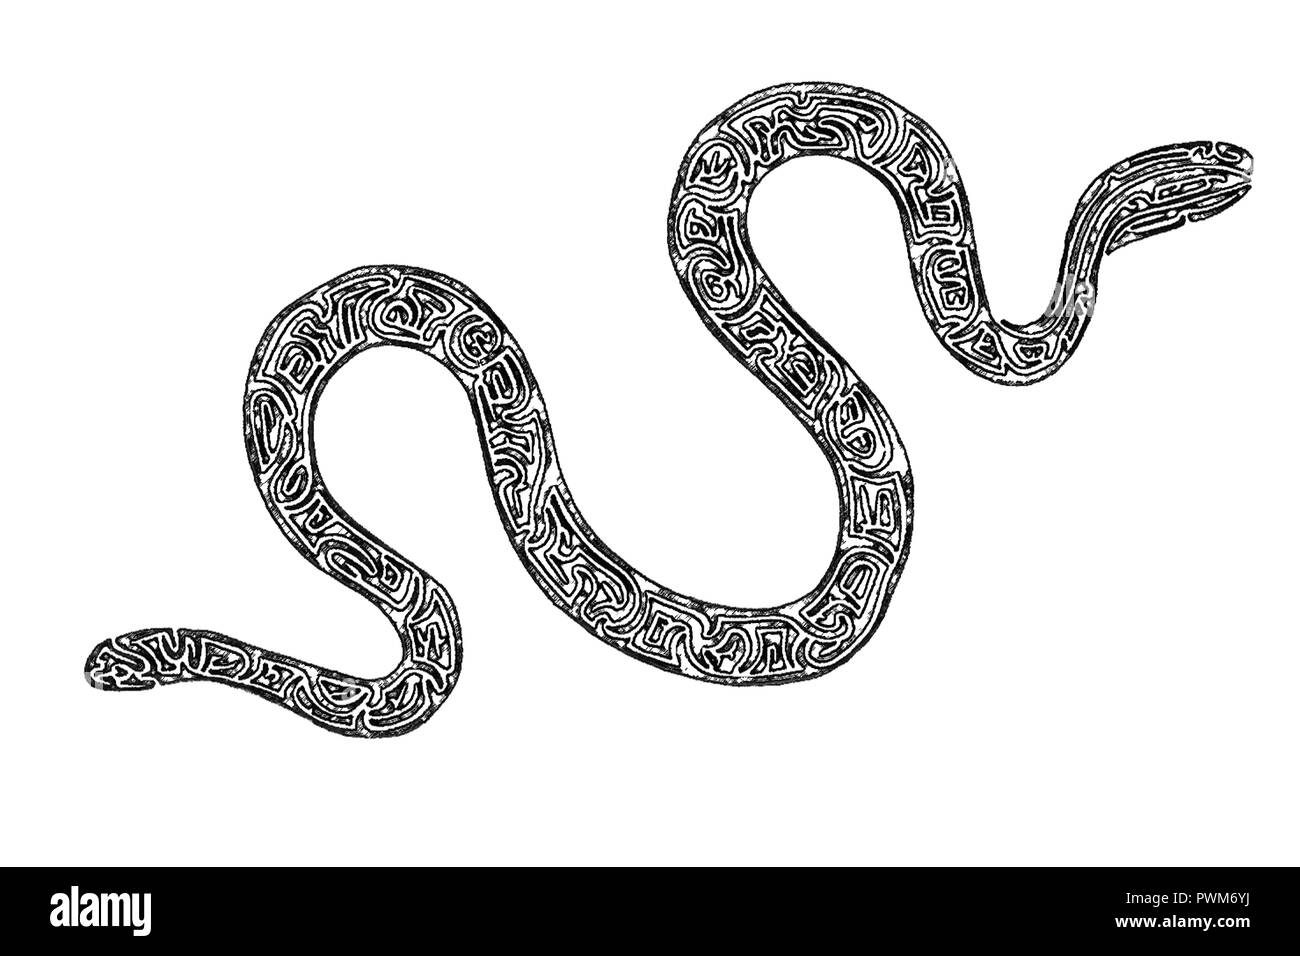 Illustration of a Sea krait, black and white, drawing, maze lines - Stock Image